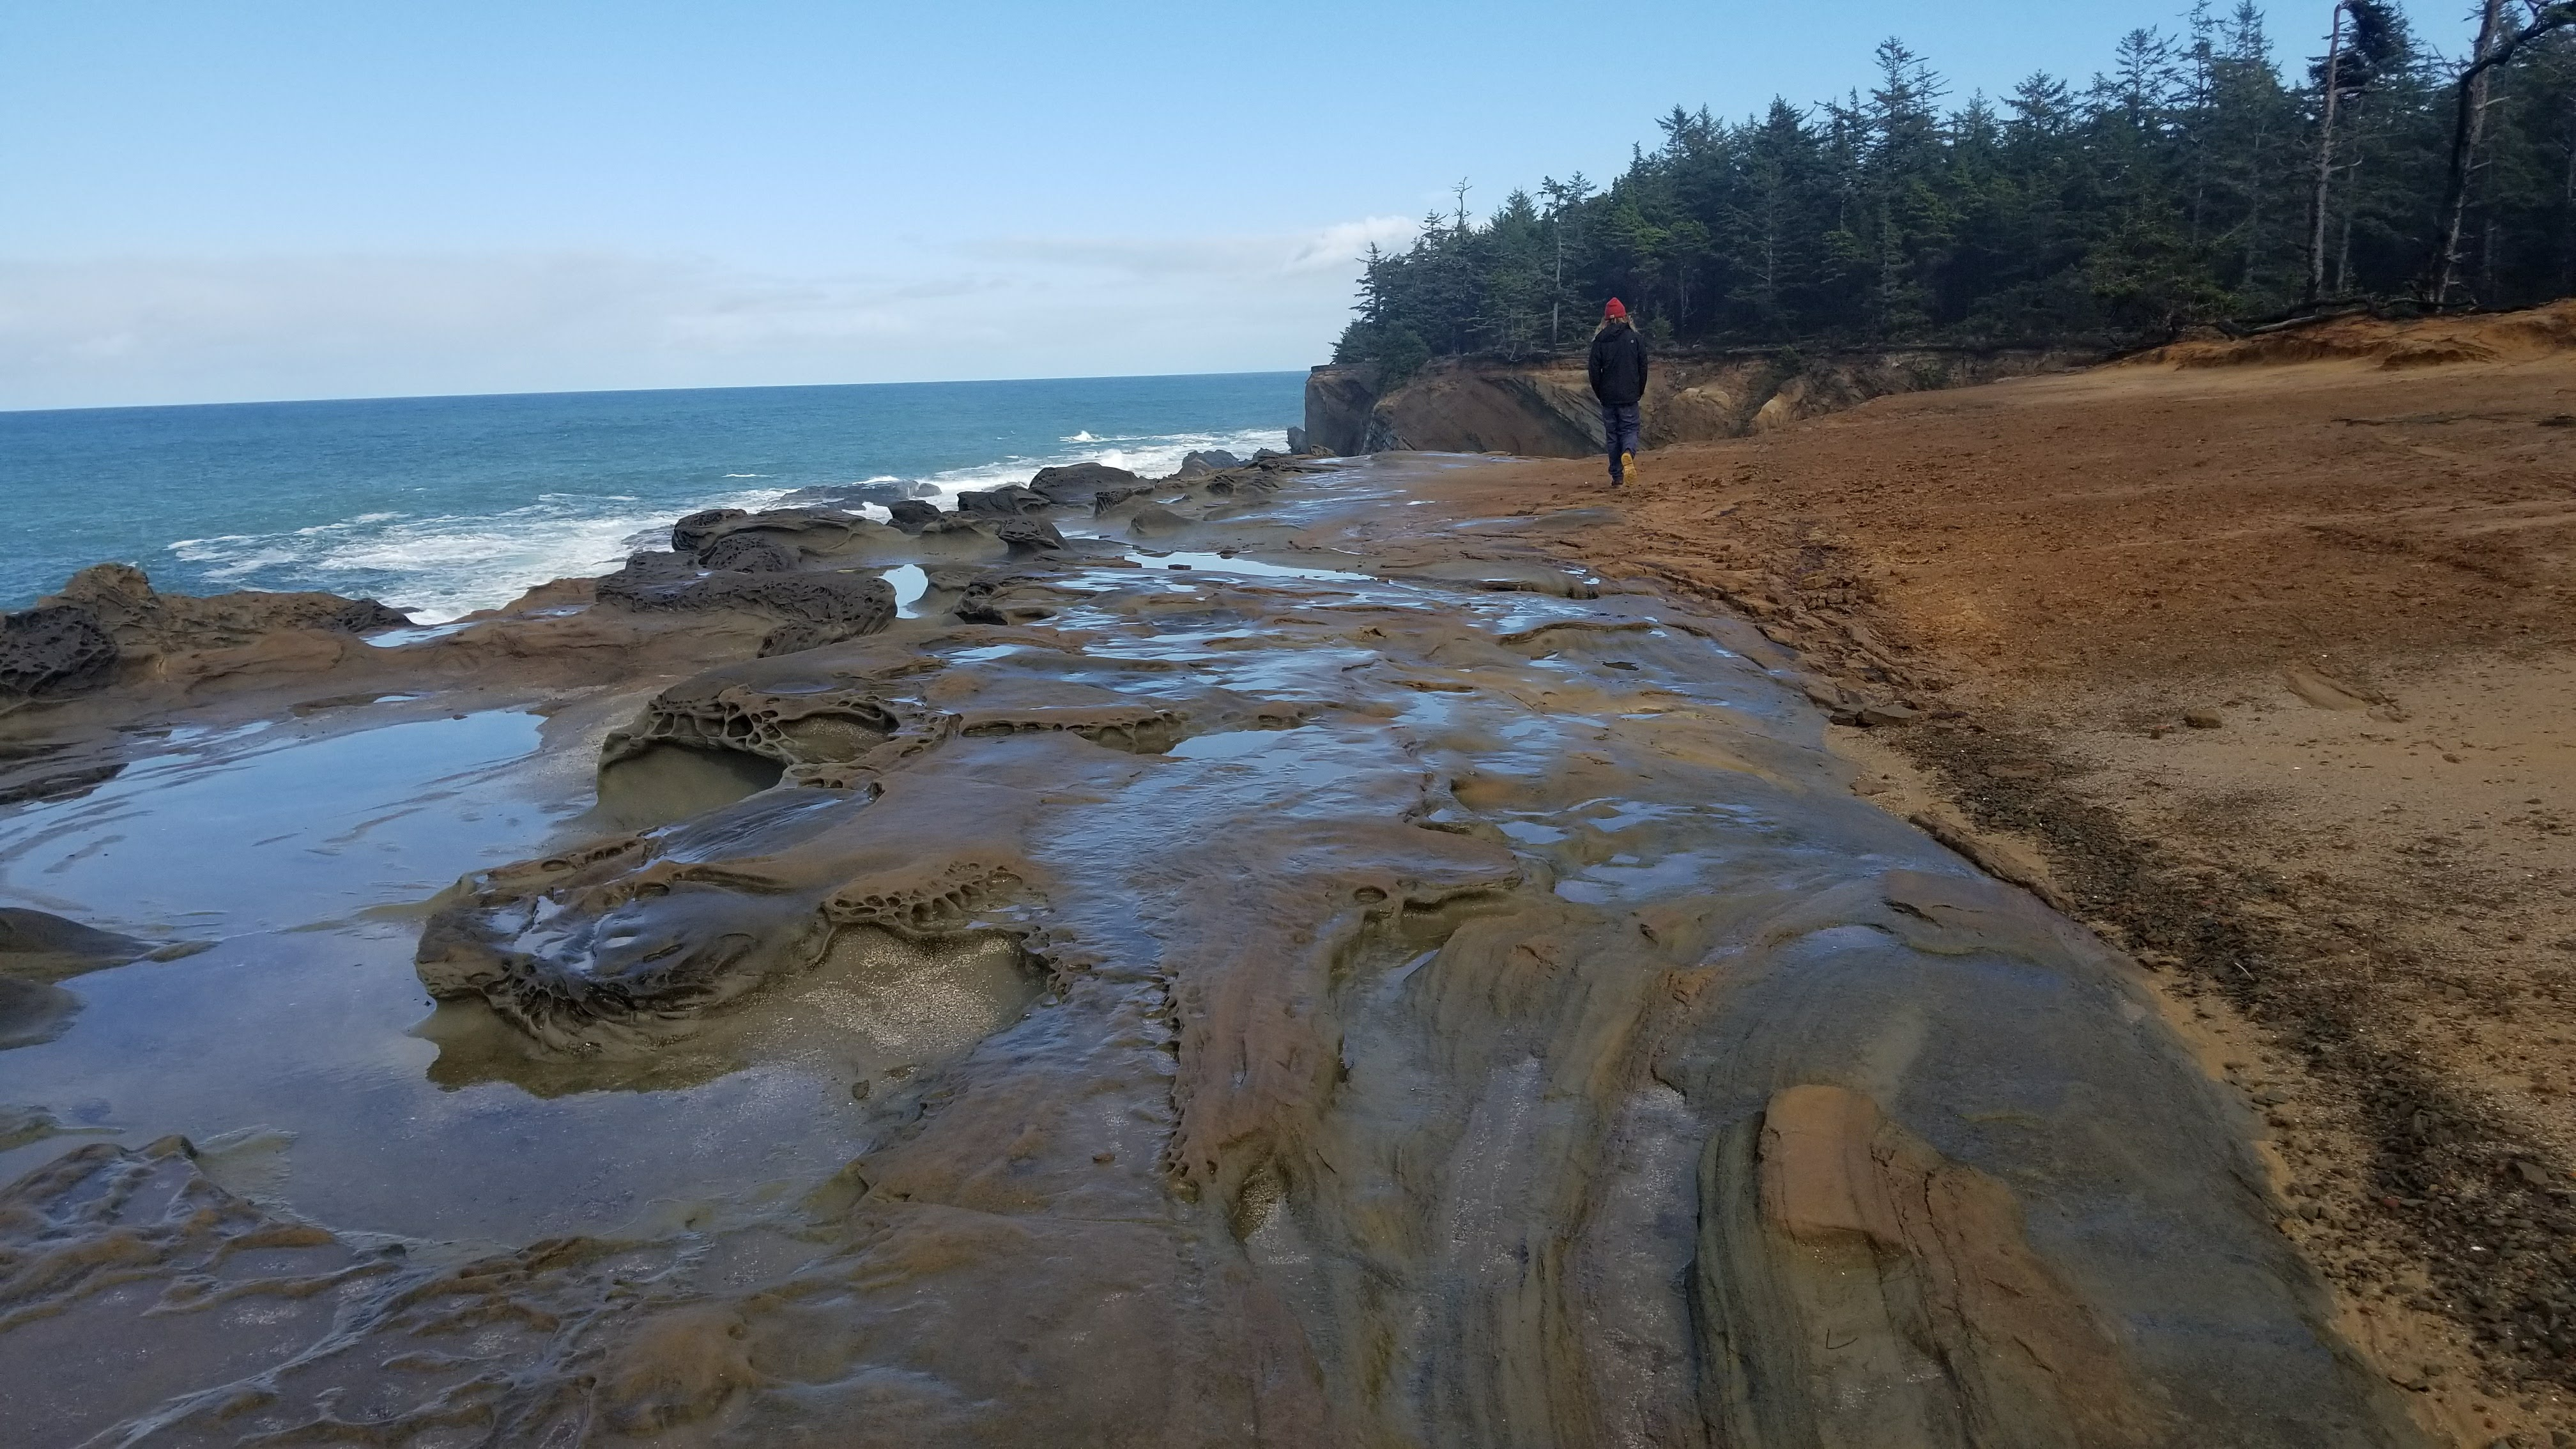 rocks near ocean with trees and boy walking in distance